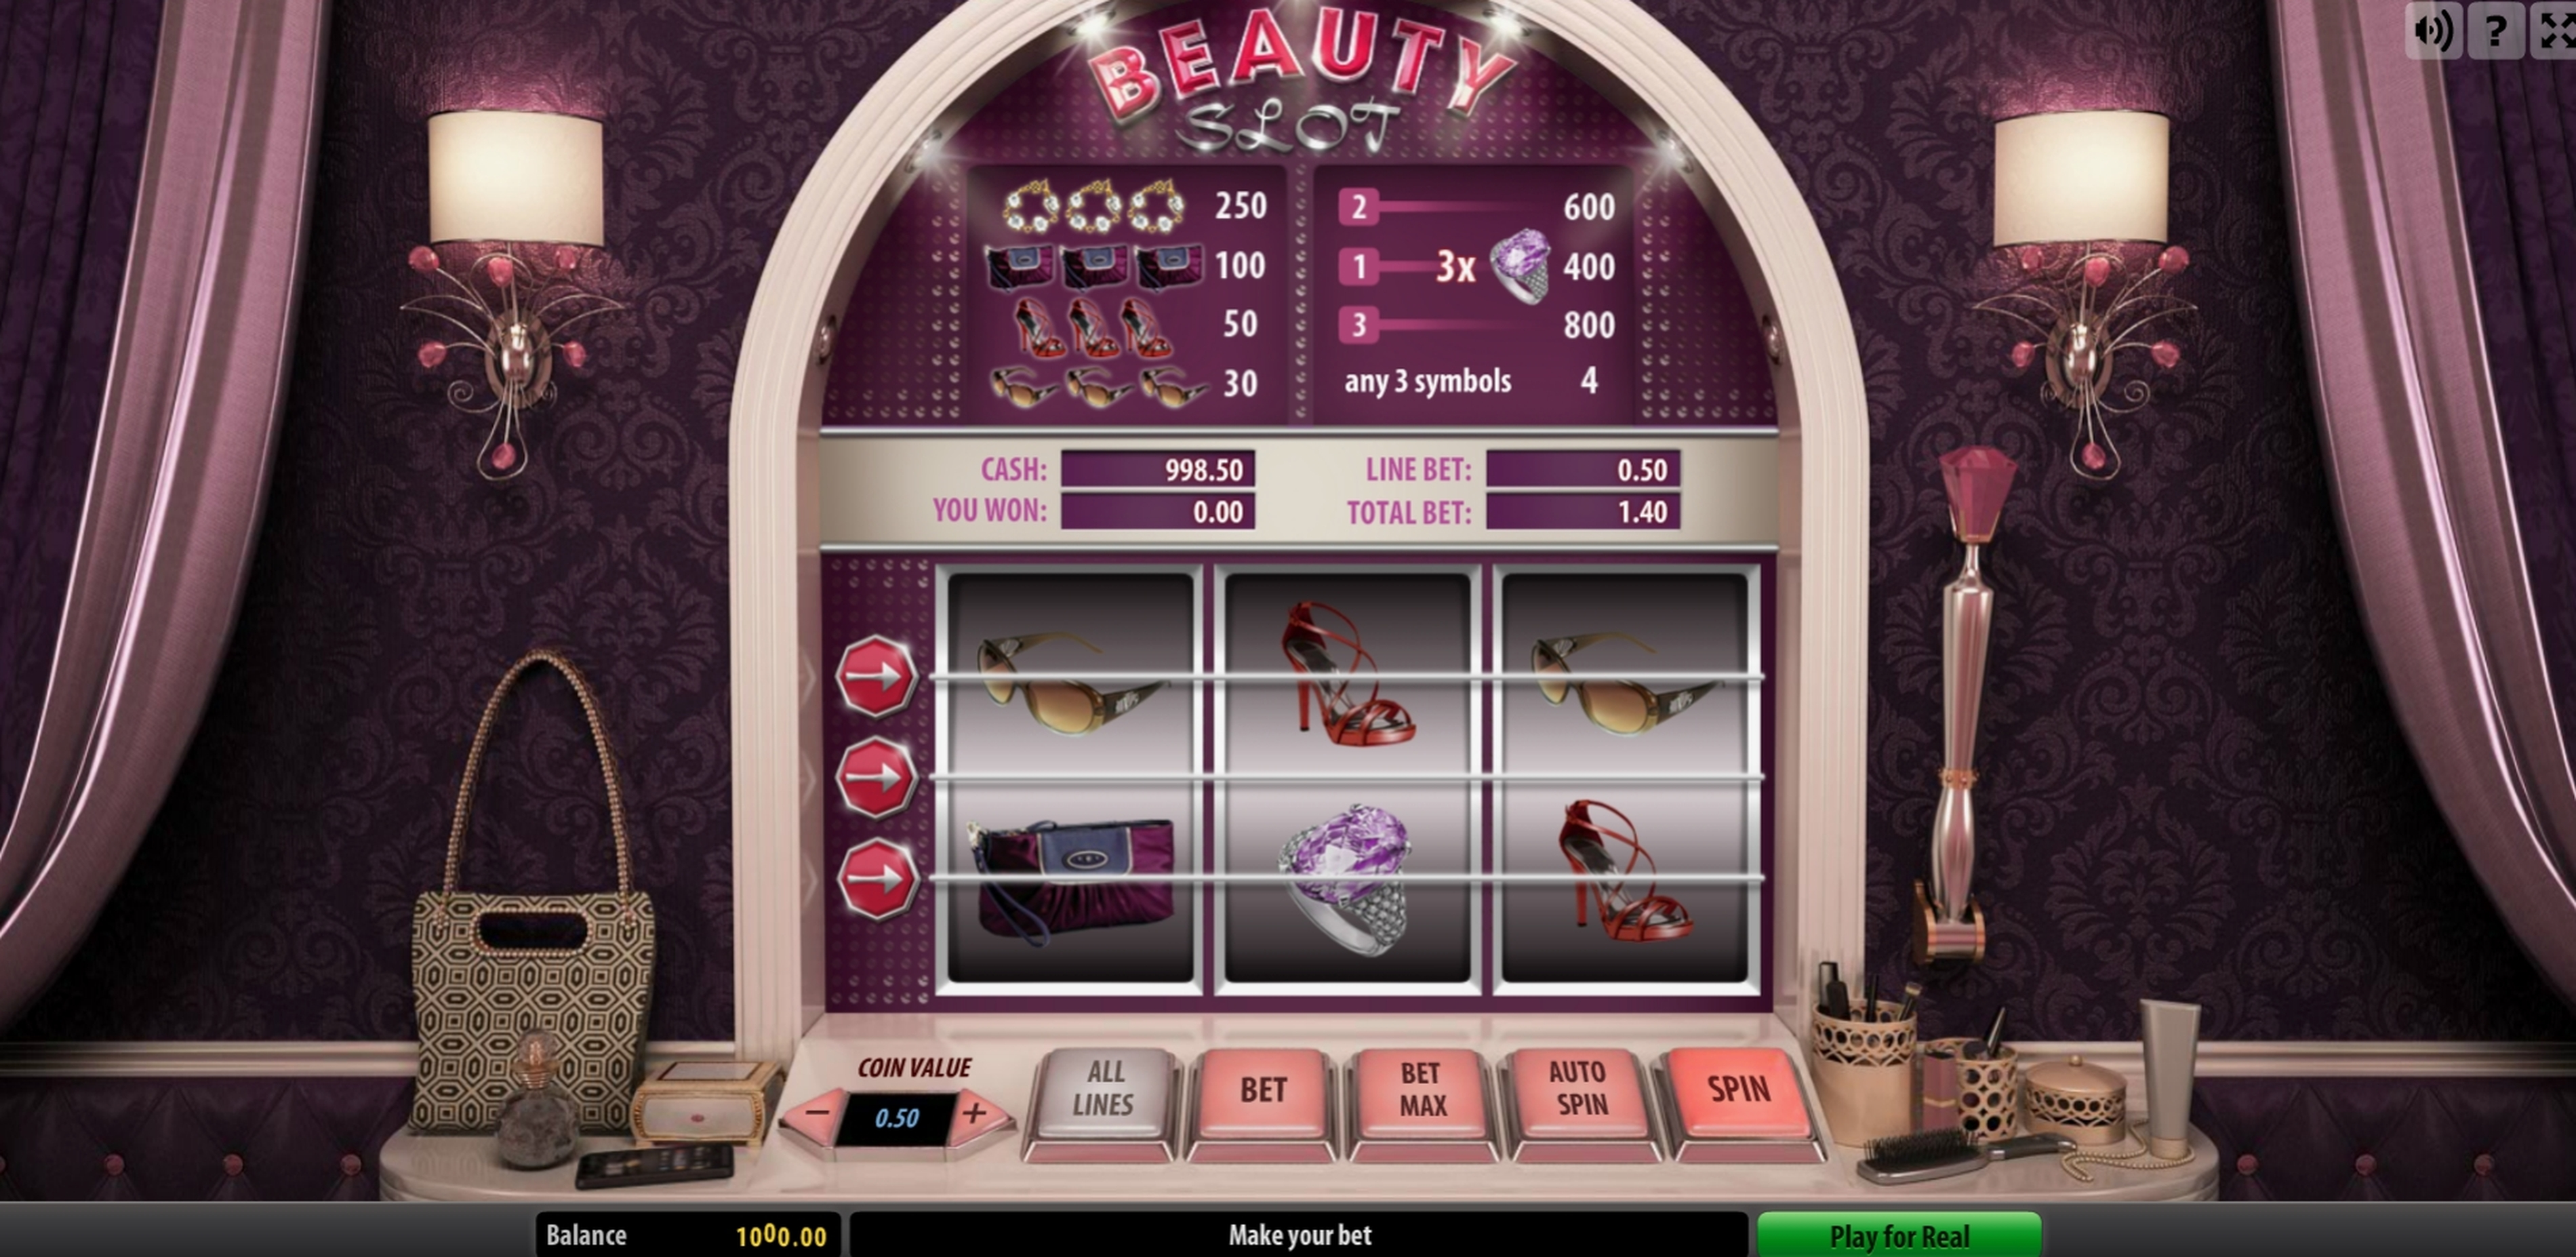 Reels in Beauty Slot Slot Game by Fugaso